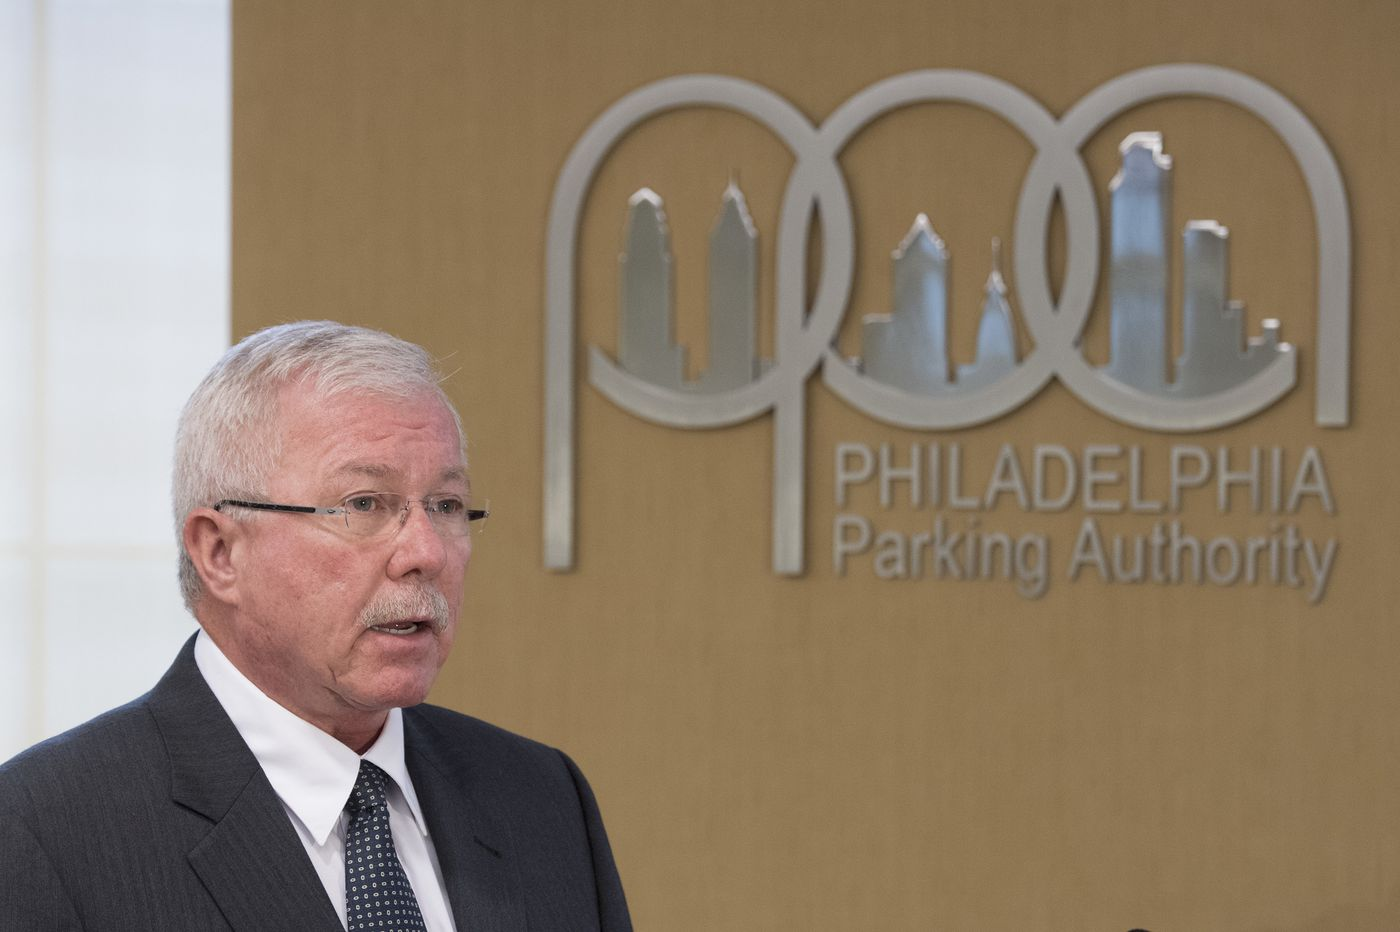 Sources in Johnny Doc case: PPA board chair Joseph Ashdale bribed councilman to squash agency audit